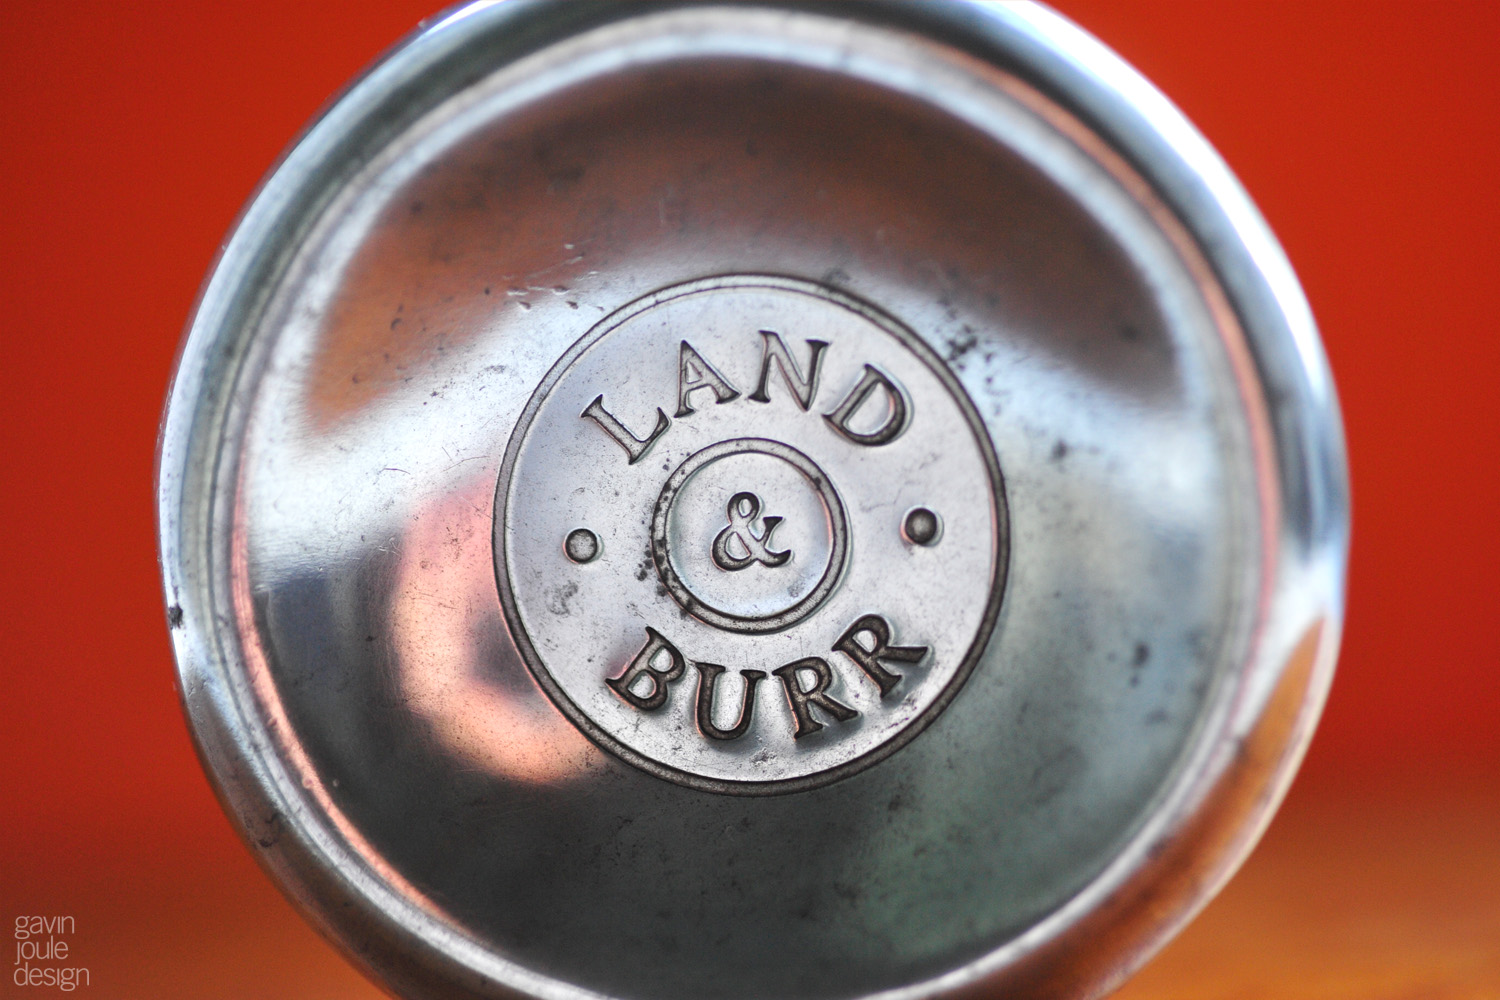 Land-And-Burr-2